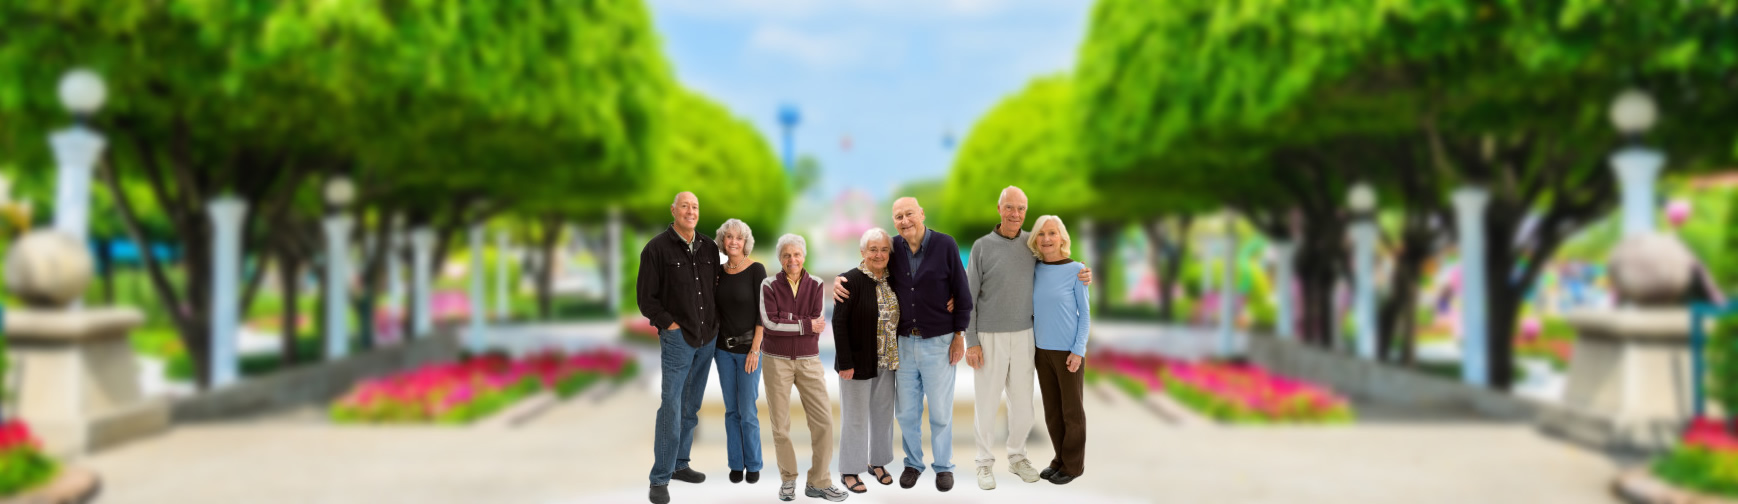 images?q=tbn:ANd9GcQh_l3eQ5xwiPy07kGEXjmjgmBKBRB7H2mRxCGhv1tFWg5c_mWT Collection of Vacation Destinations For Seniors Info @capturingmomentsphotography.net